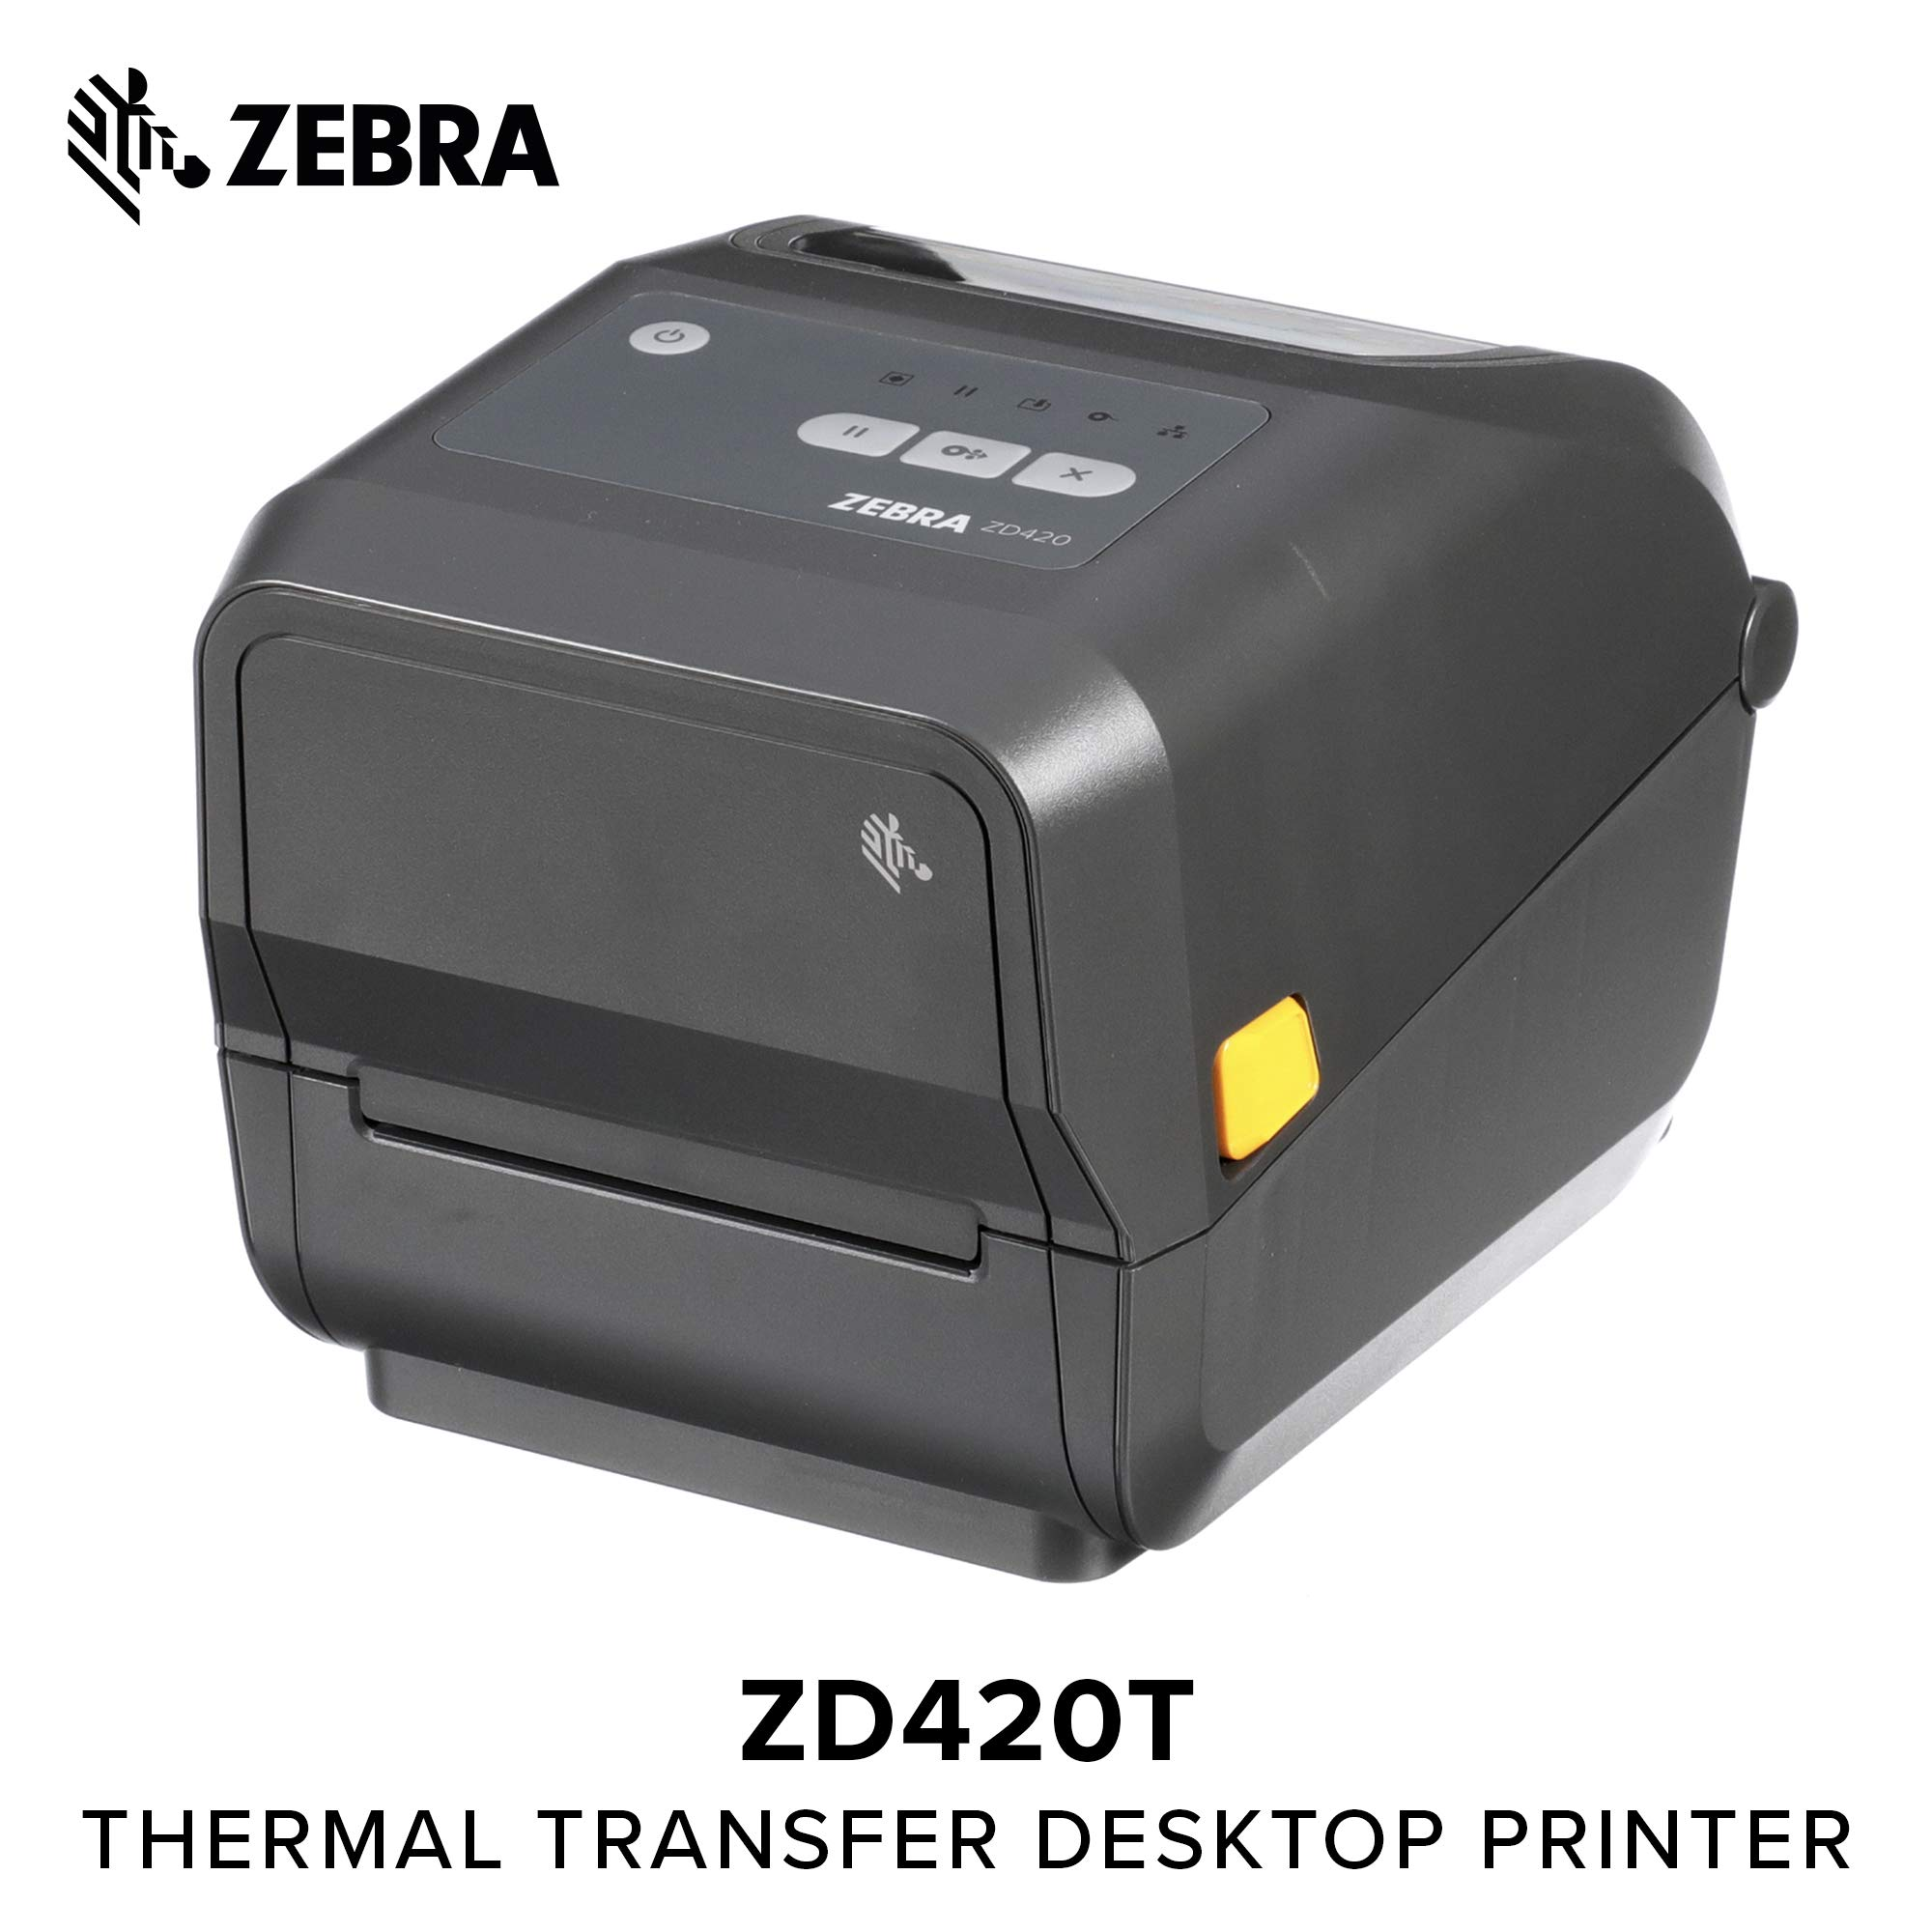 Zebra - ZD420t Thermal Transfer Desktop Printer for Labels and Barcodes - Print Width 4 in - 300 dpi - Interface: USB - ZD42043-T01000EZ